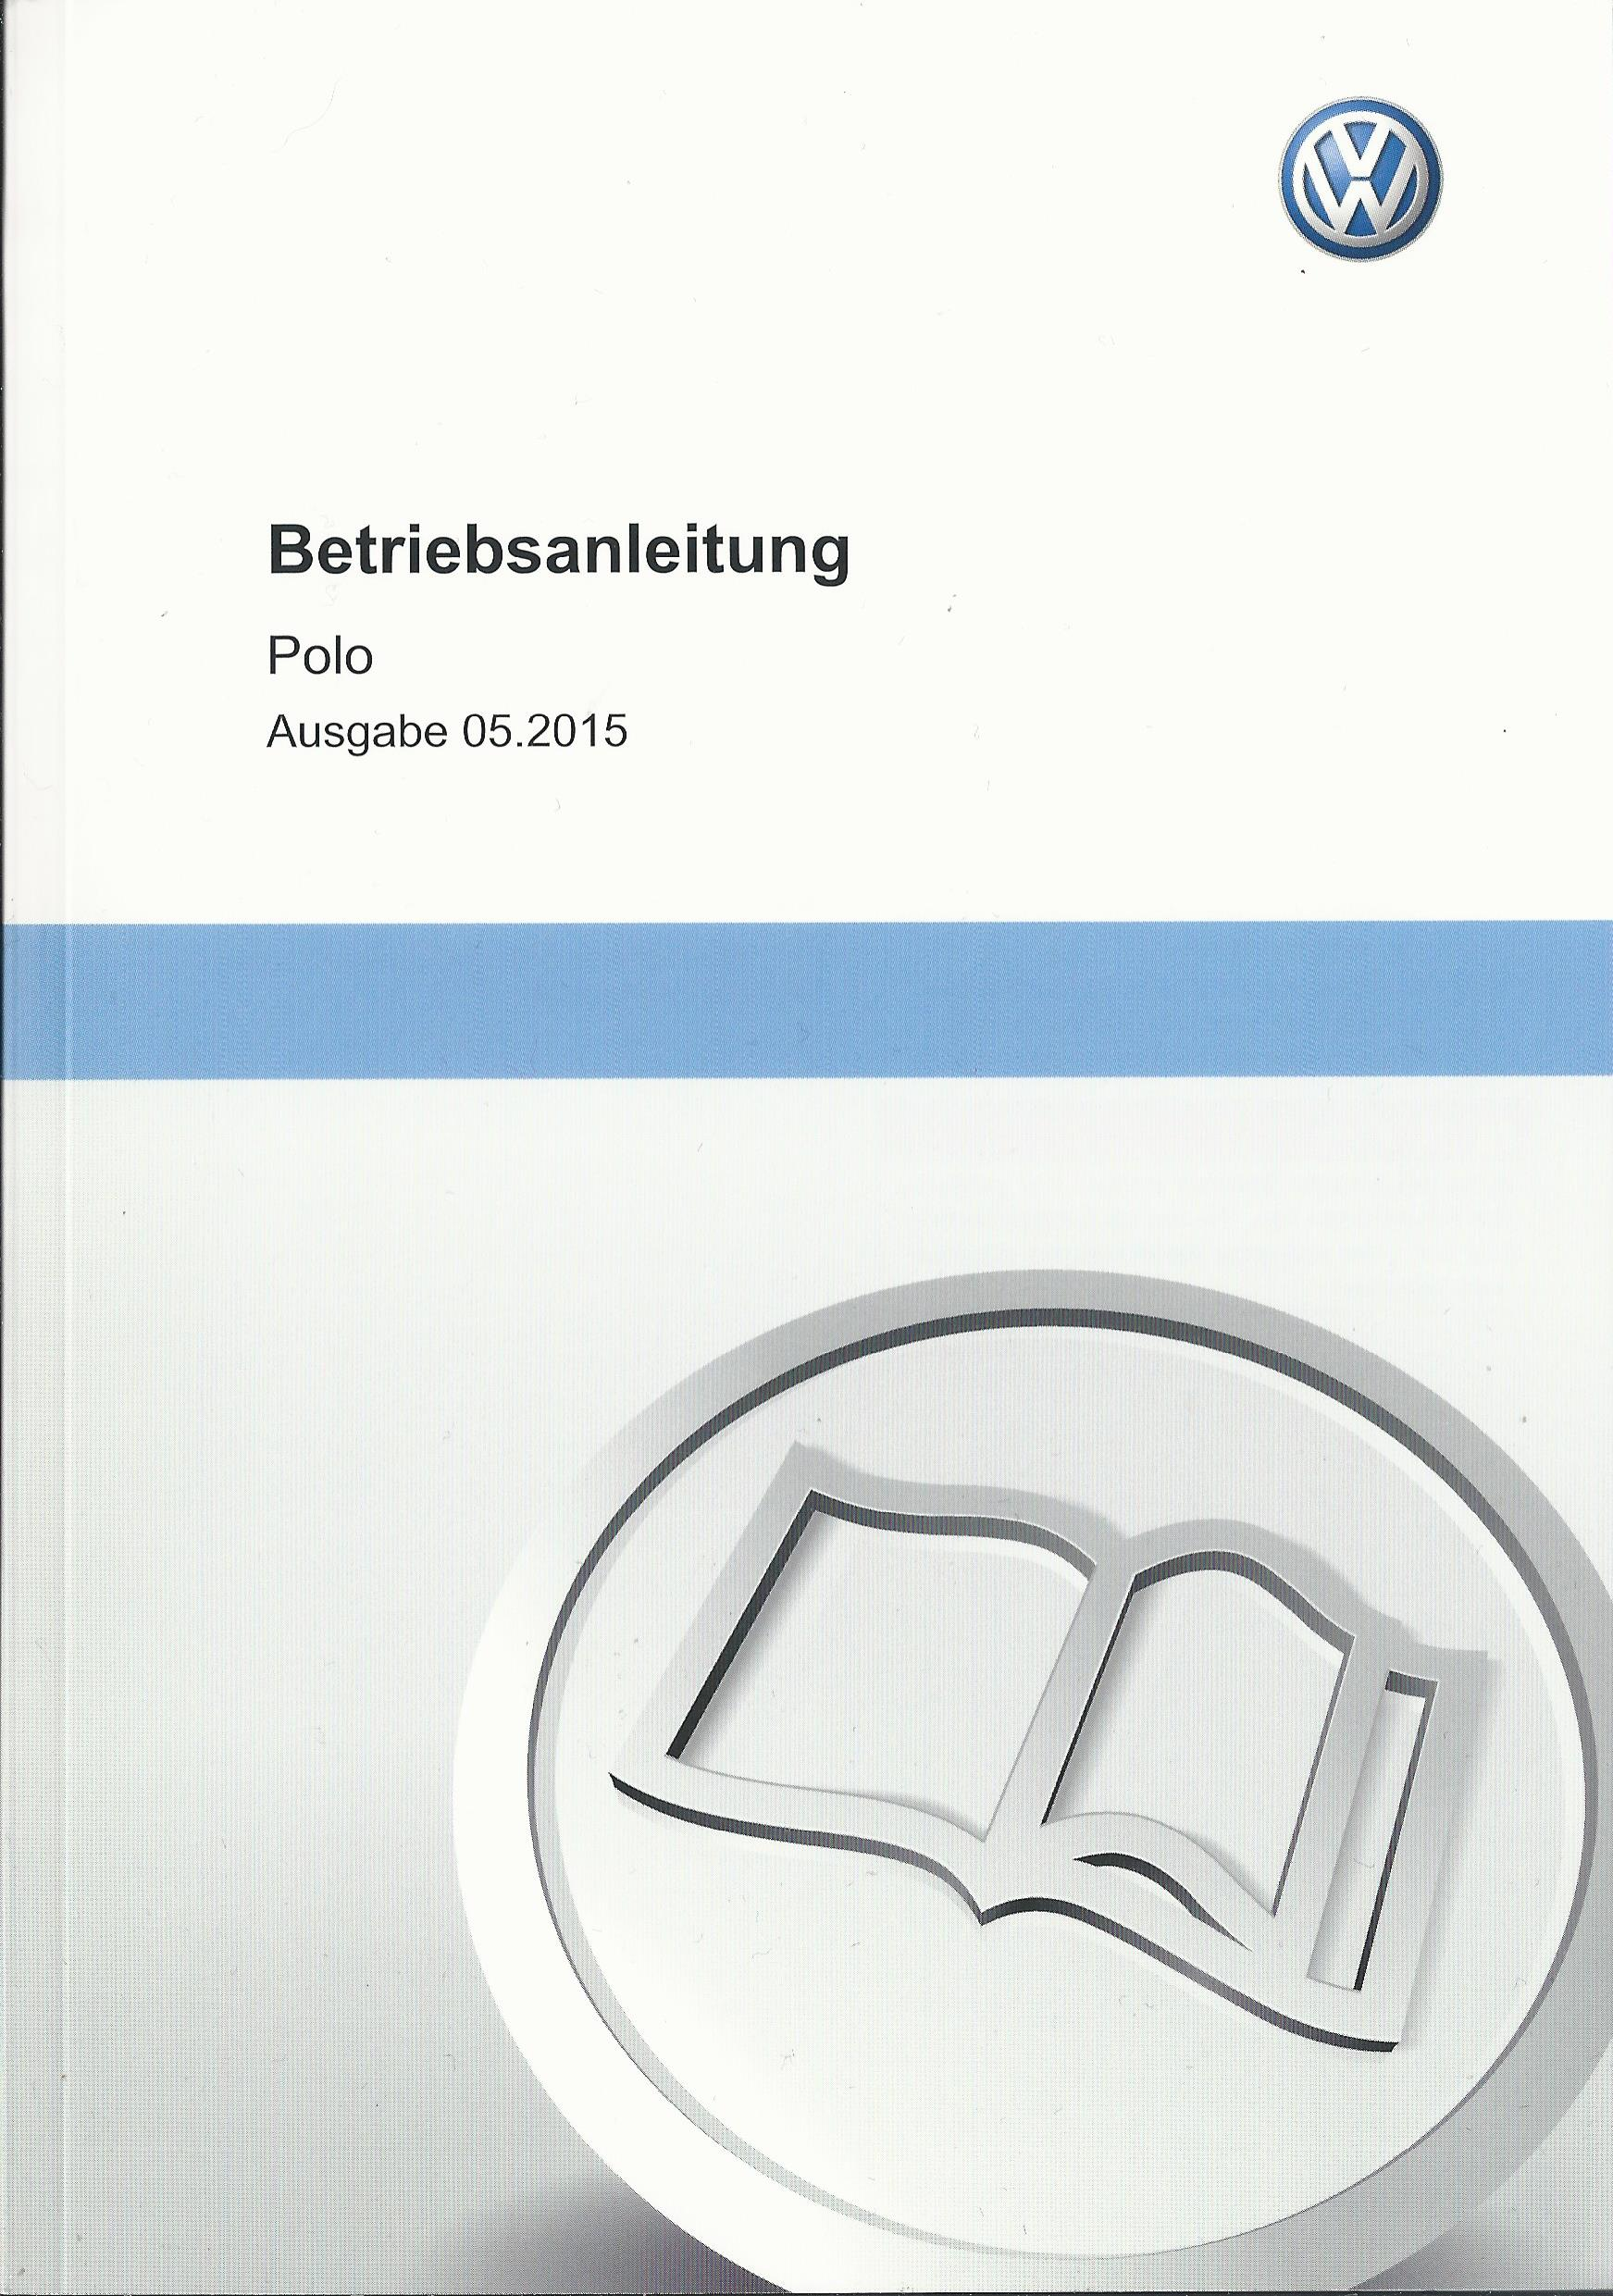 vw polo 5 betriebsanleitung 2015 bedienungsanleitung handbuch bordbuch ba ebay. Black Bedroom Furniture Sets. Home Design Ideas